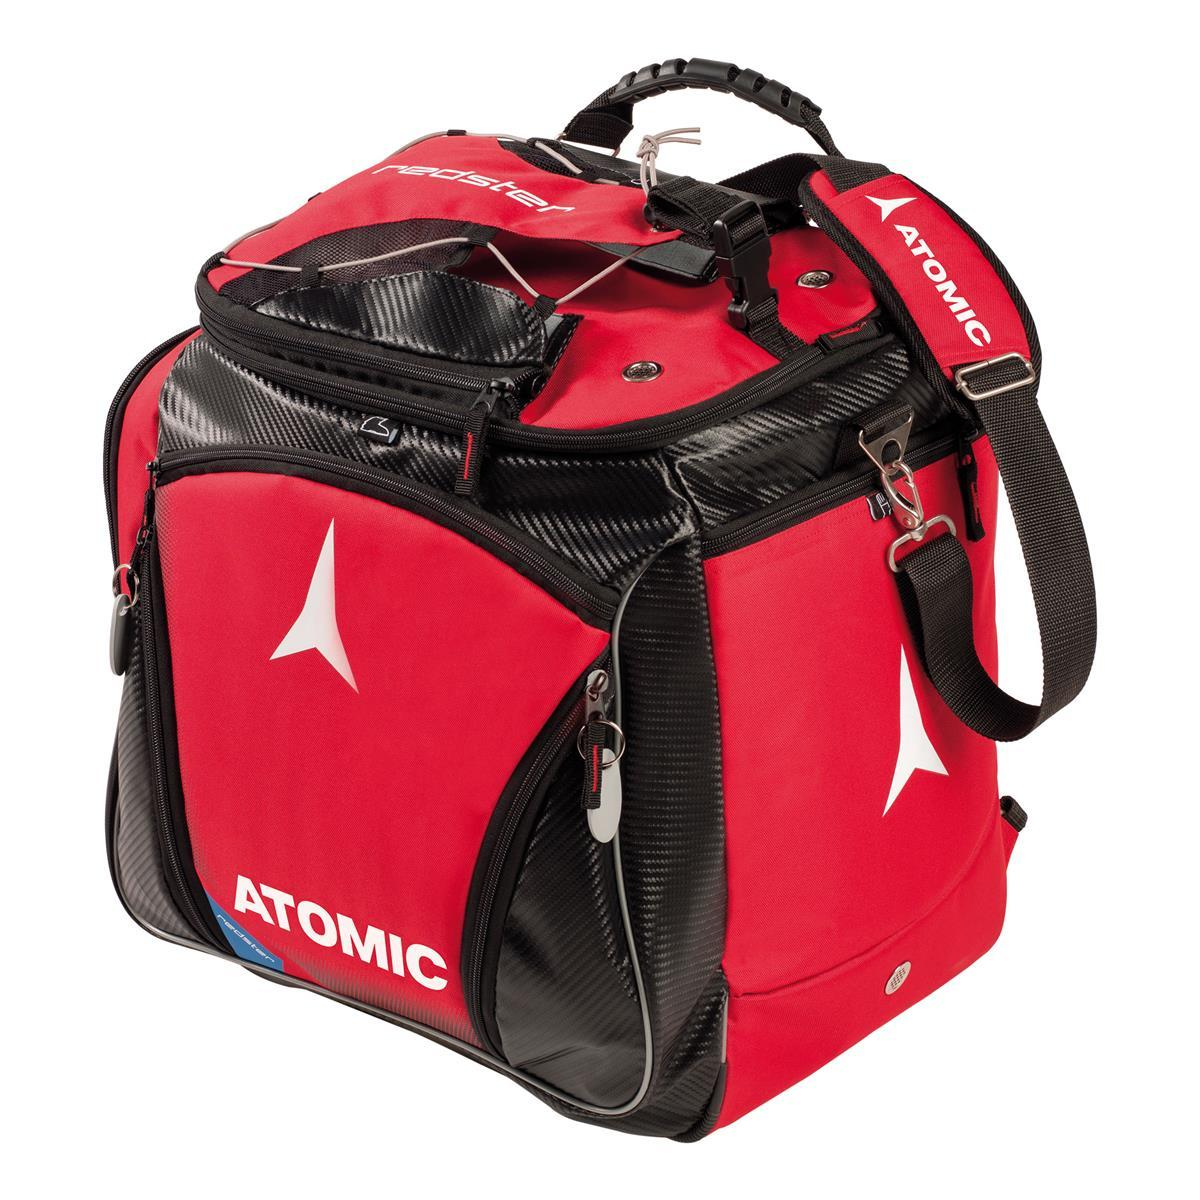 Atomic Redster Heated Boot Bag 220V